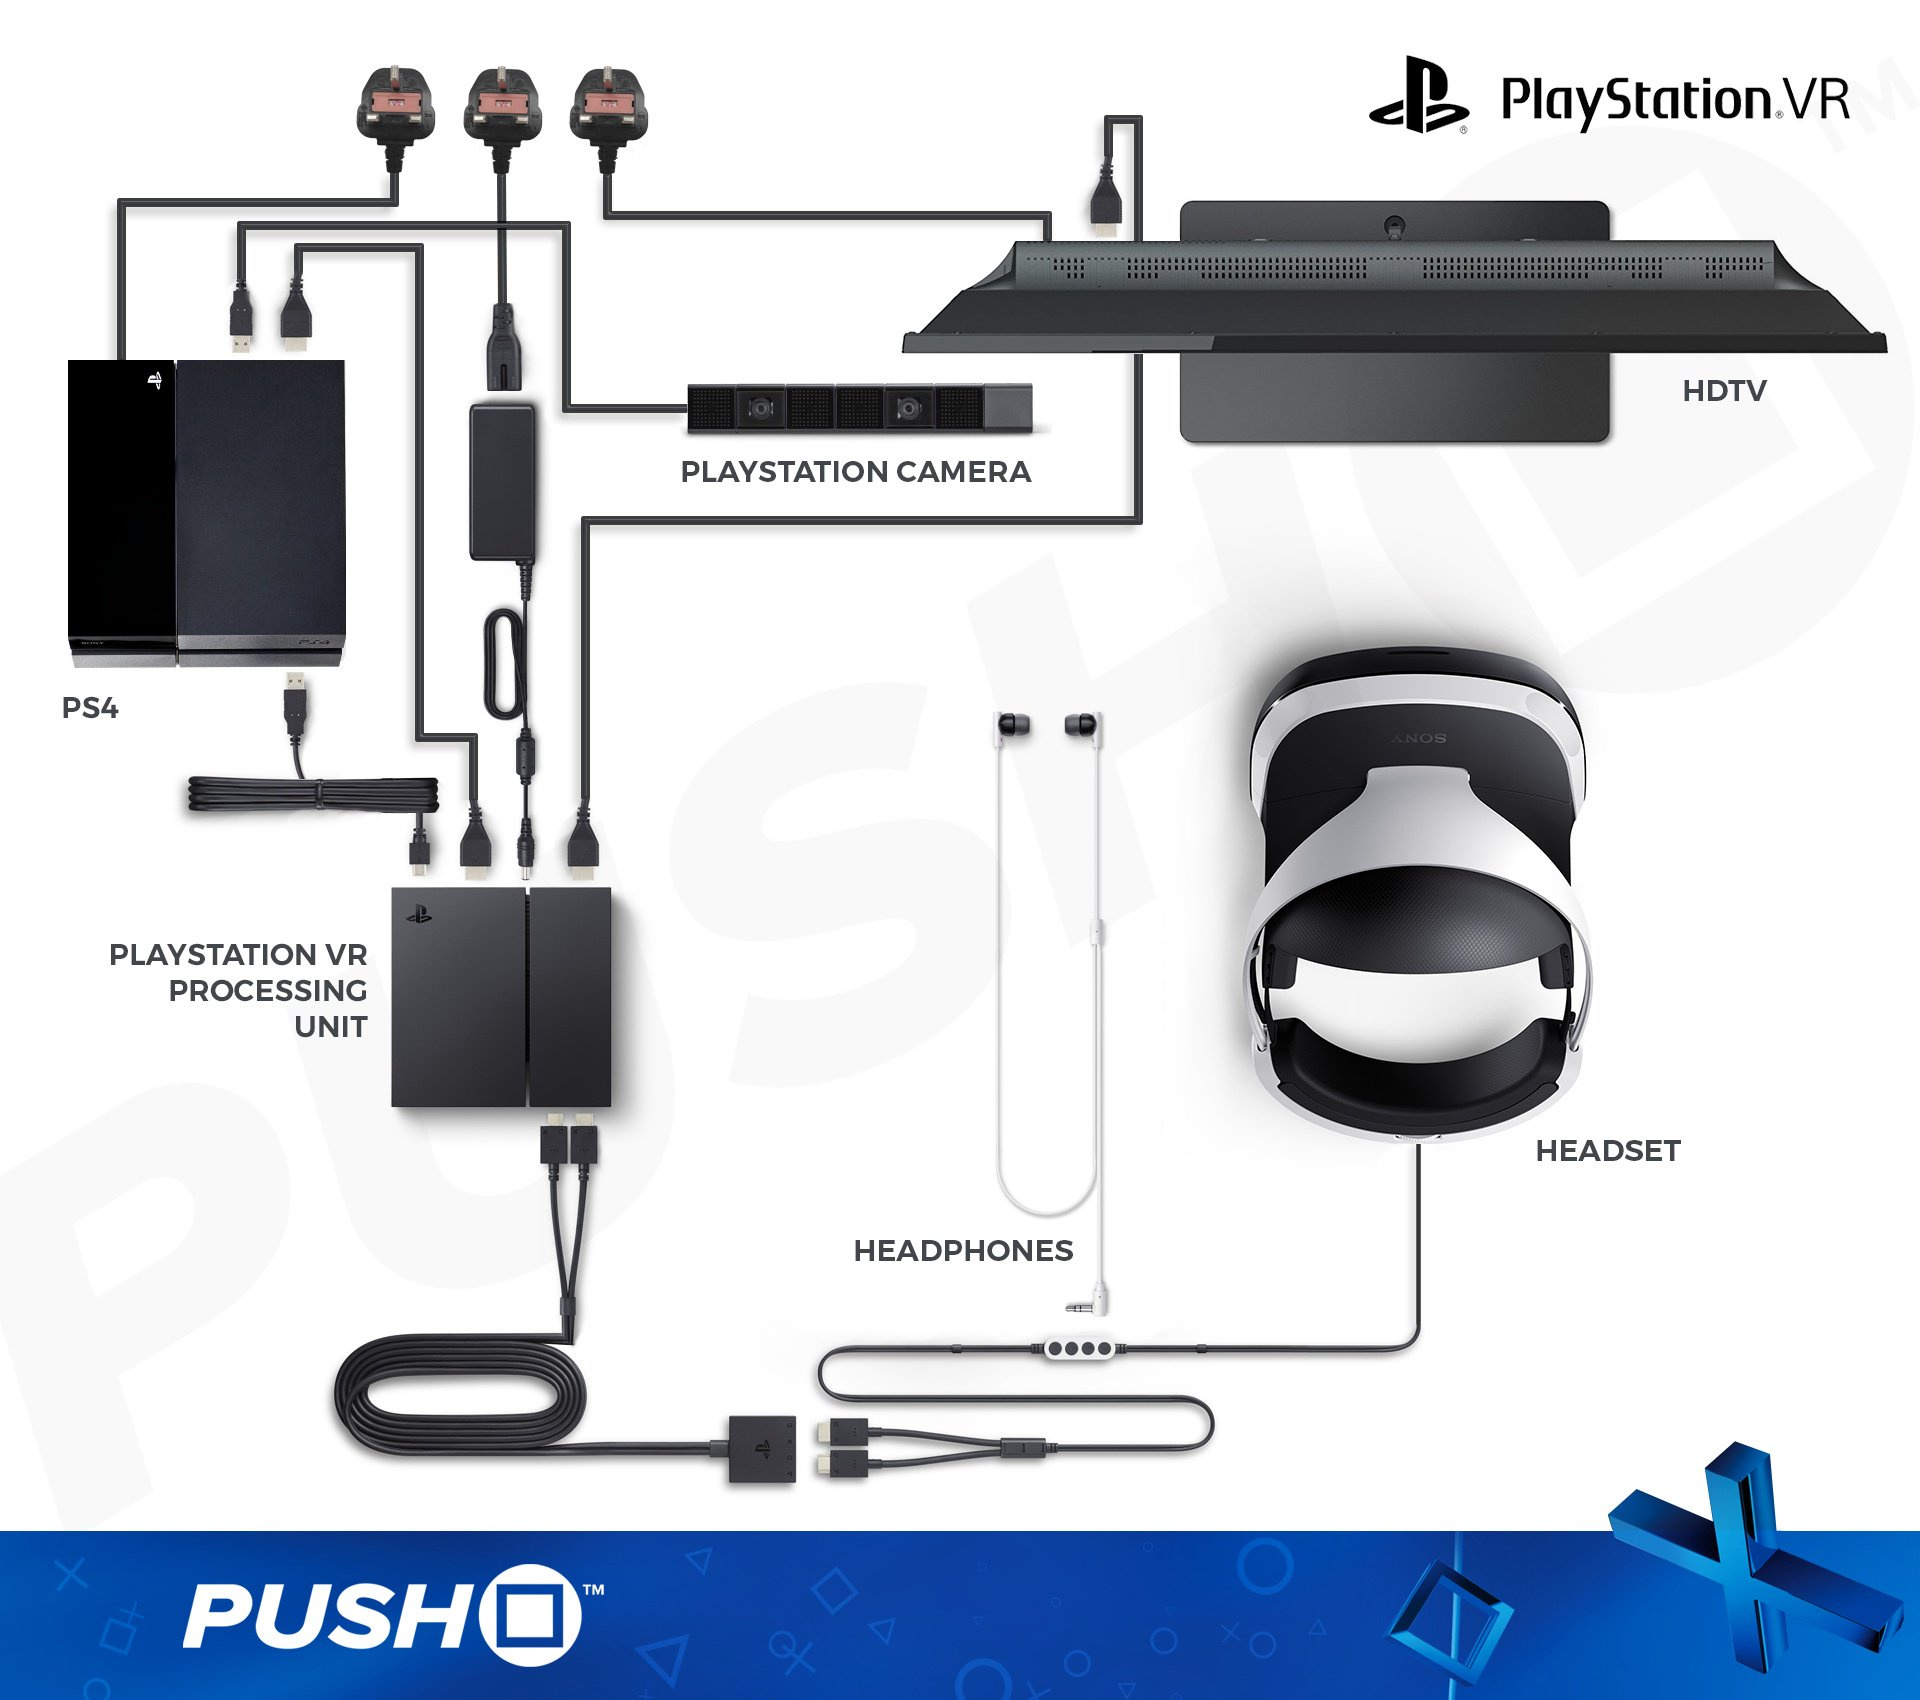 The Nintendo voice chat 'setup' reminds me of this PSVR infographic from our chums at Push Square